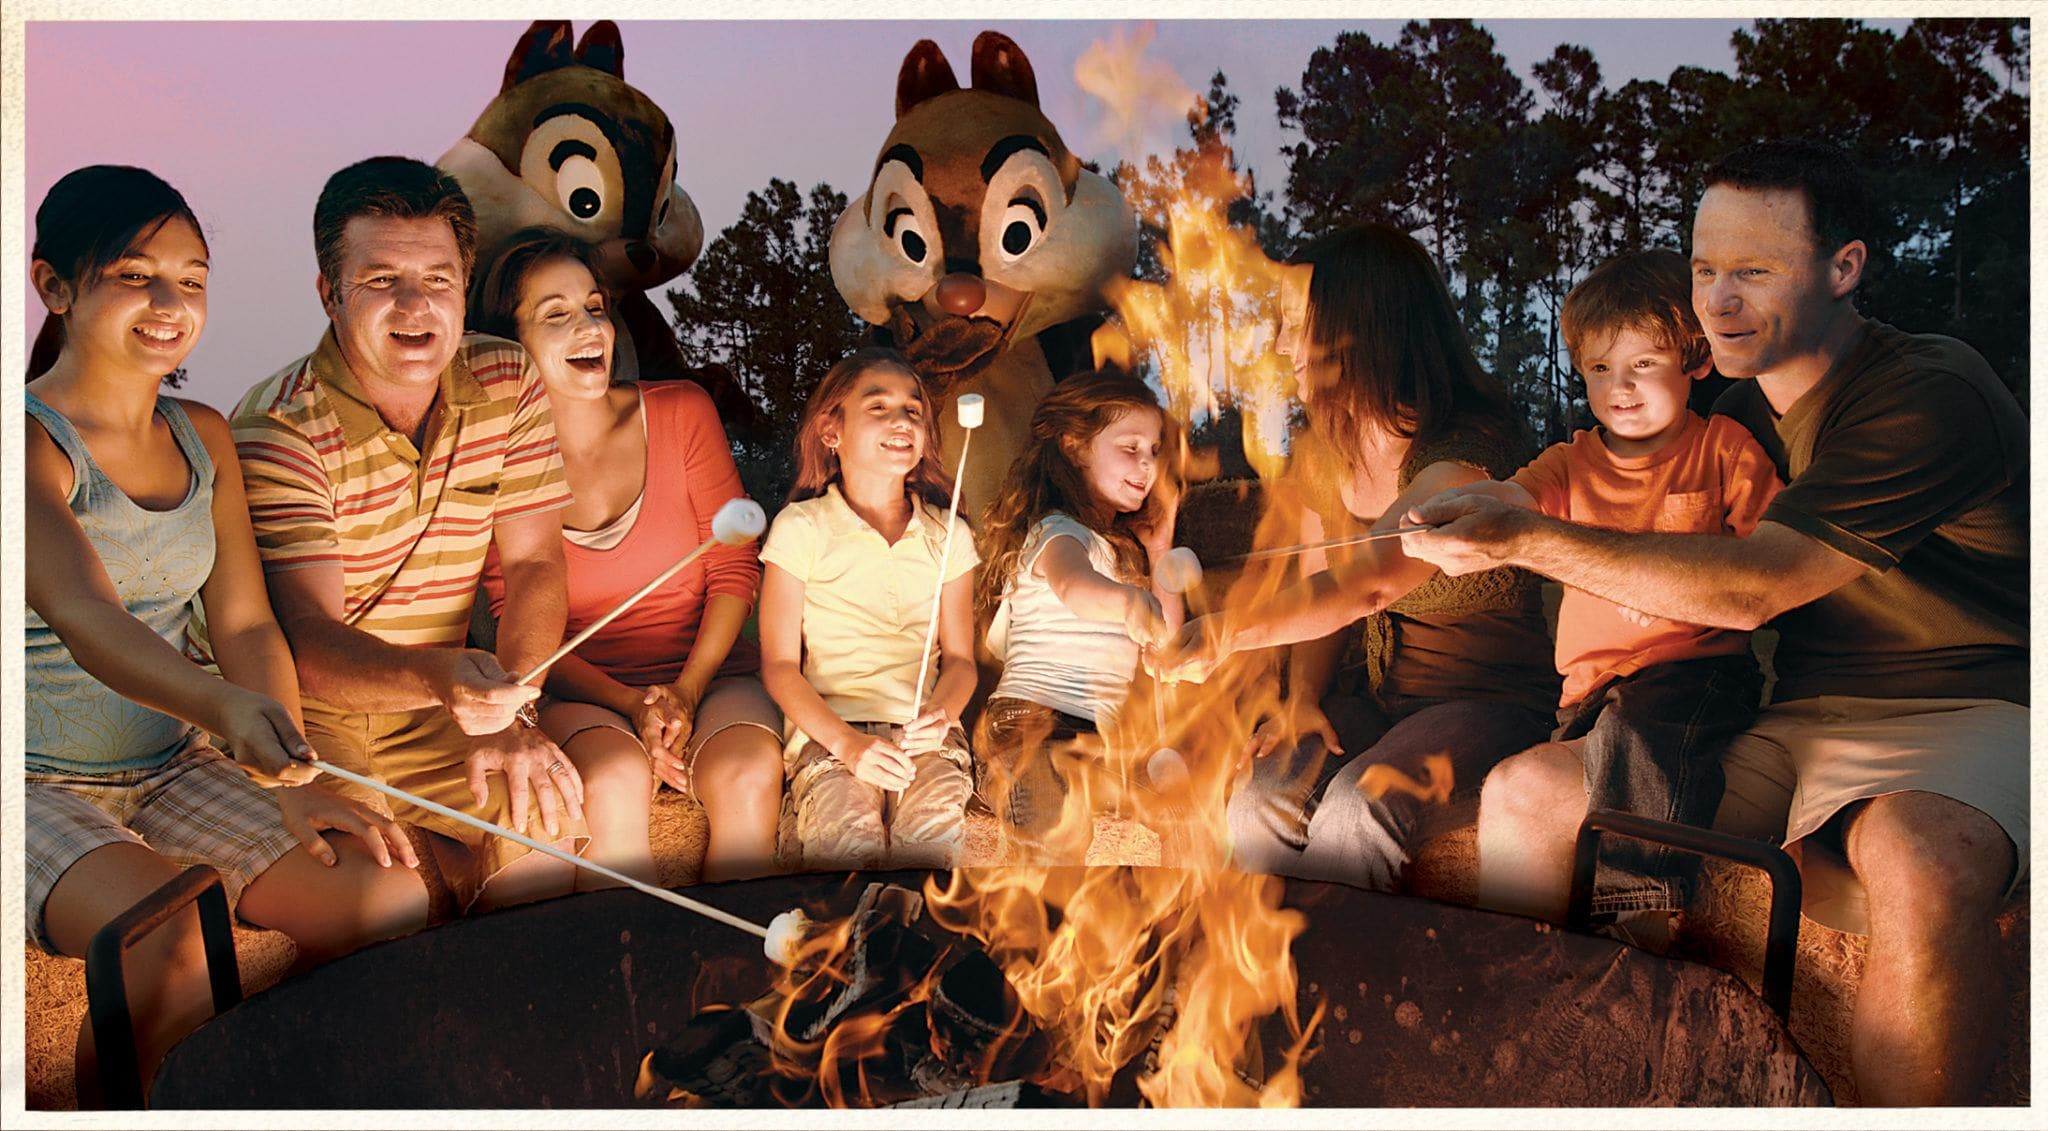 Who wouldn't want to sing campfire songs with Chip and Dale at Disney's Fort Wilderness Resort?